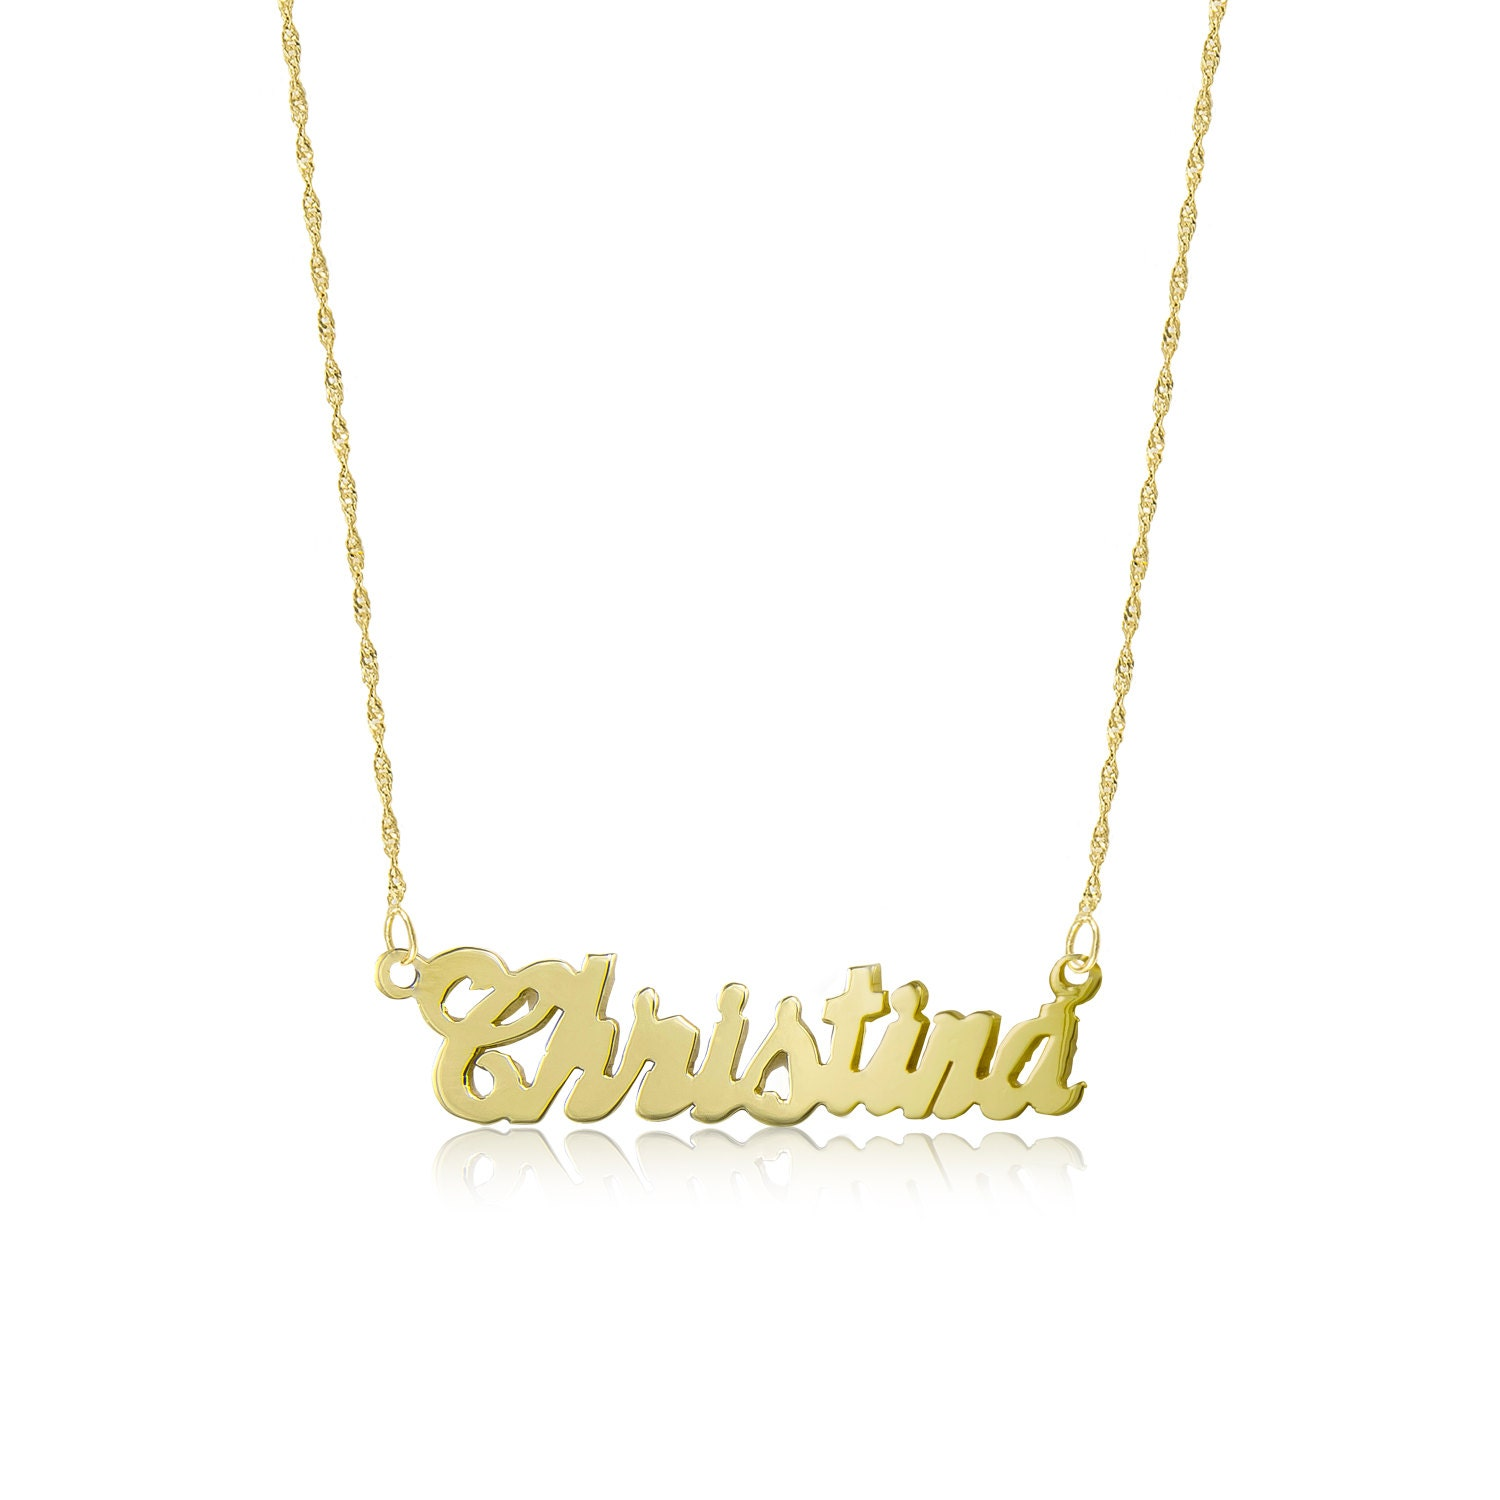 k design pendant mini letter custom shop necklace bello miniminiletternecklace kelly